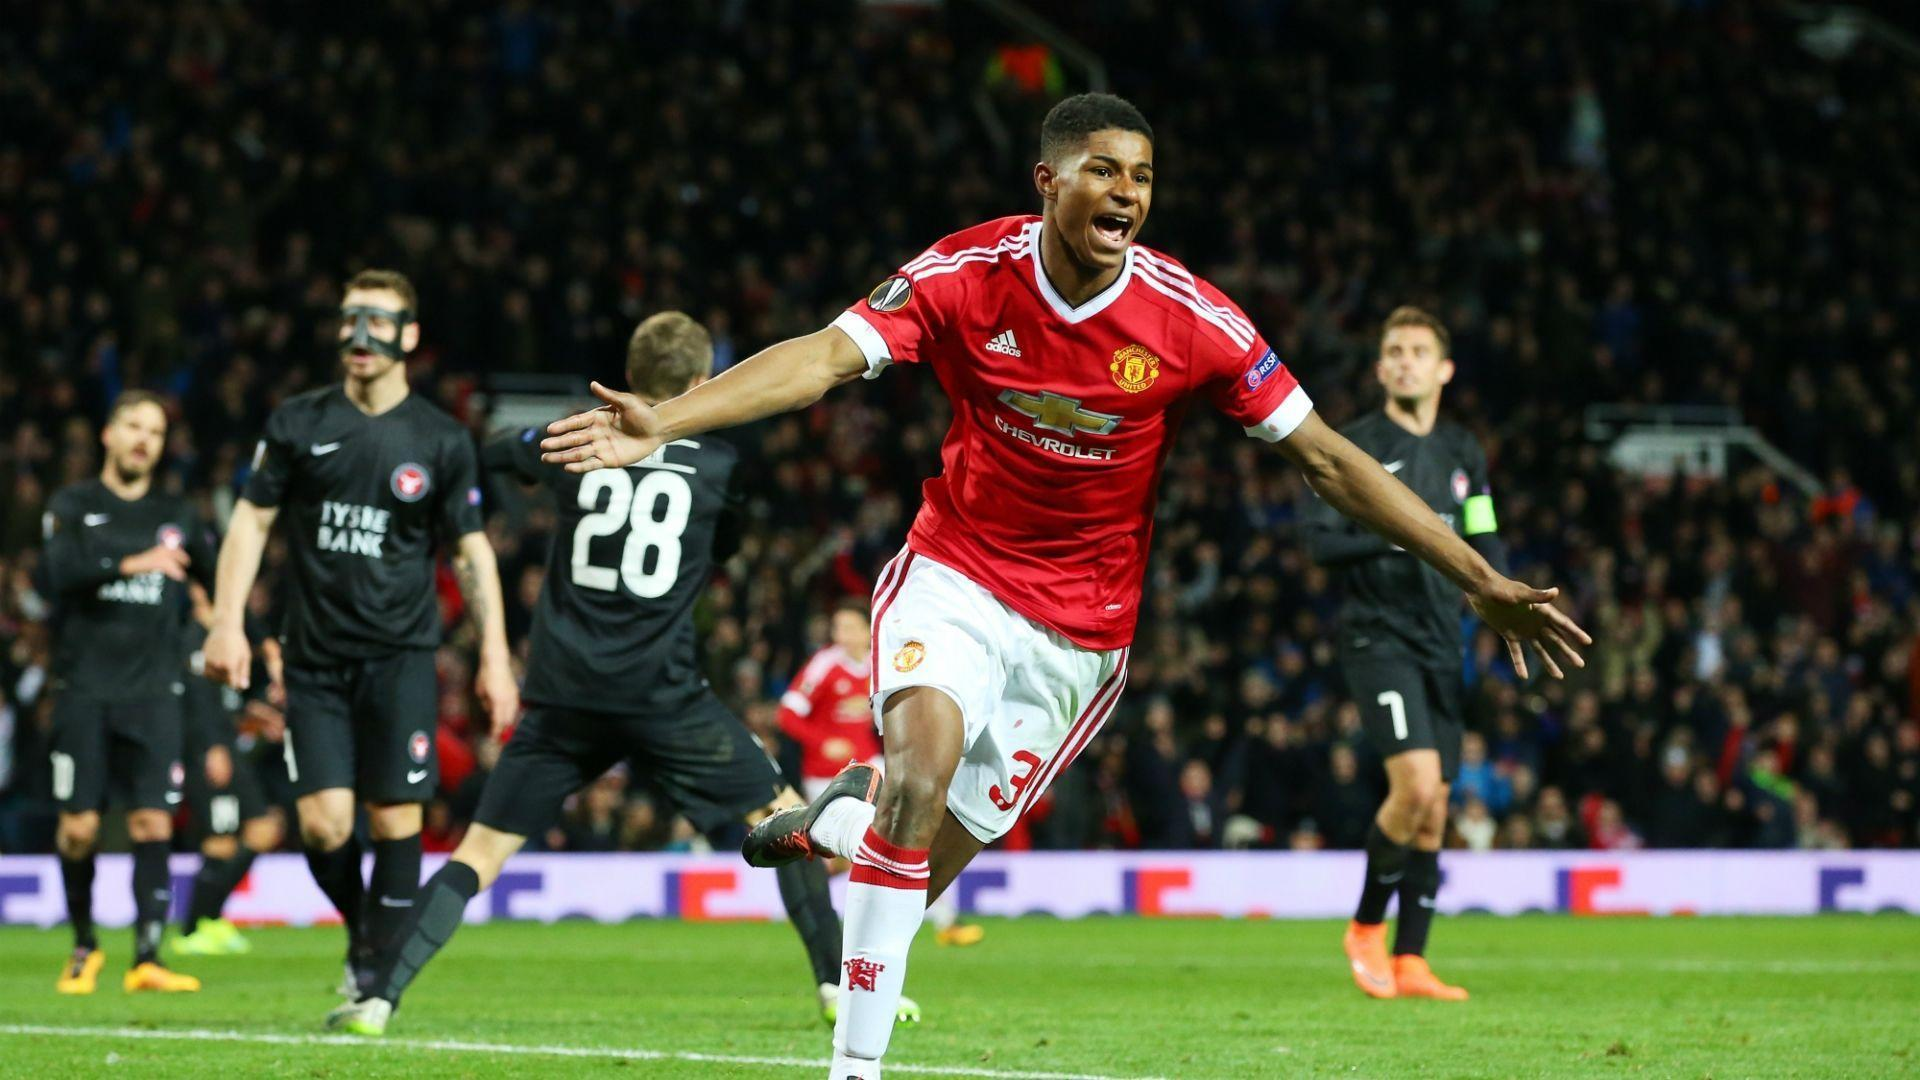 Manchester United Old Trafford Stadium Wallpapers Hd Marcus Rashford Hd Desktop Wallpapers At Manchester United